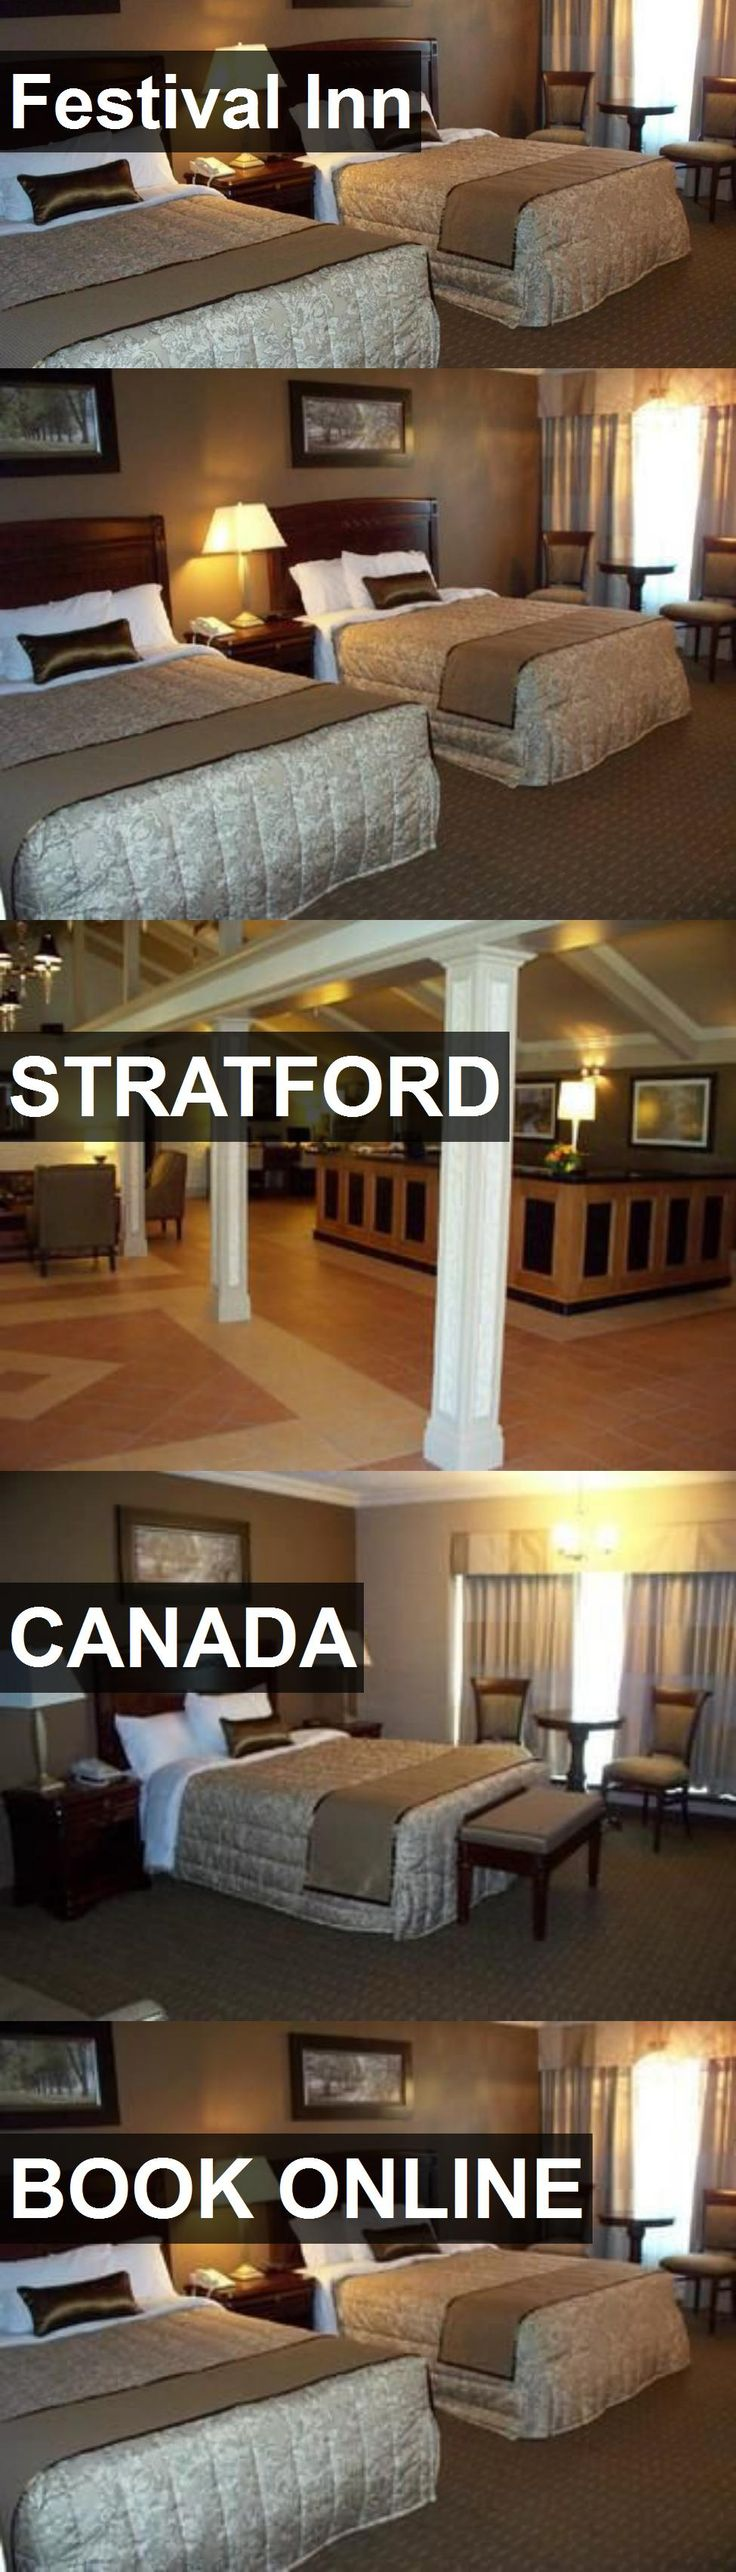 Hotel Festival Inn in Stratford, Canada. For more information, photos, reviews and best prices please follow the link. #Canada #Stratford #travel #vacation #hotel